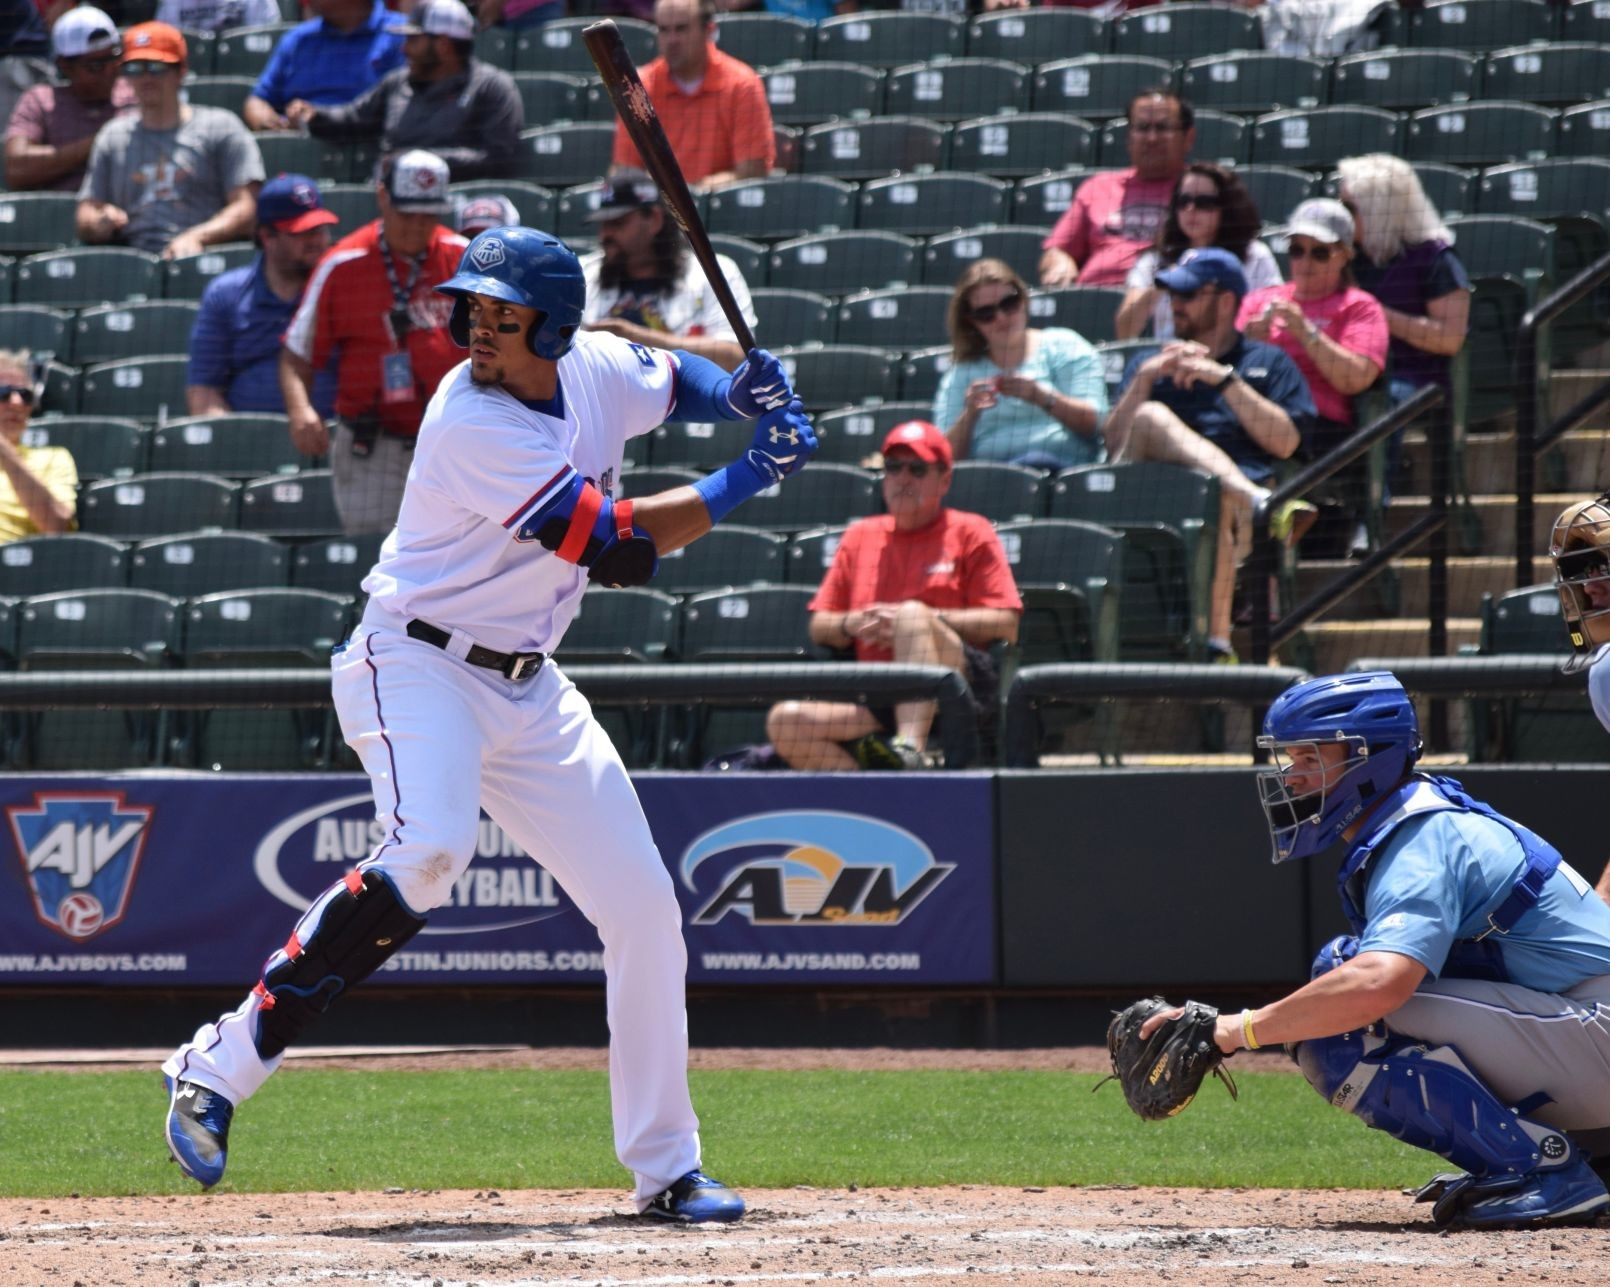 Ronald Guzman was signed as an international free agent by the Rangers in 2011 and signed a $3.5 million bonus. This is his first full season with the Express and on the Rangers' 40-man roster.